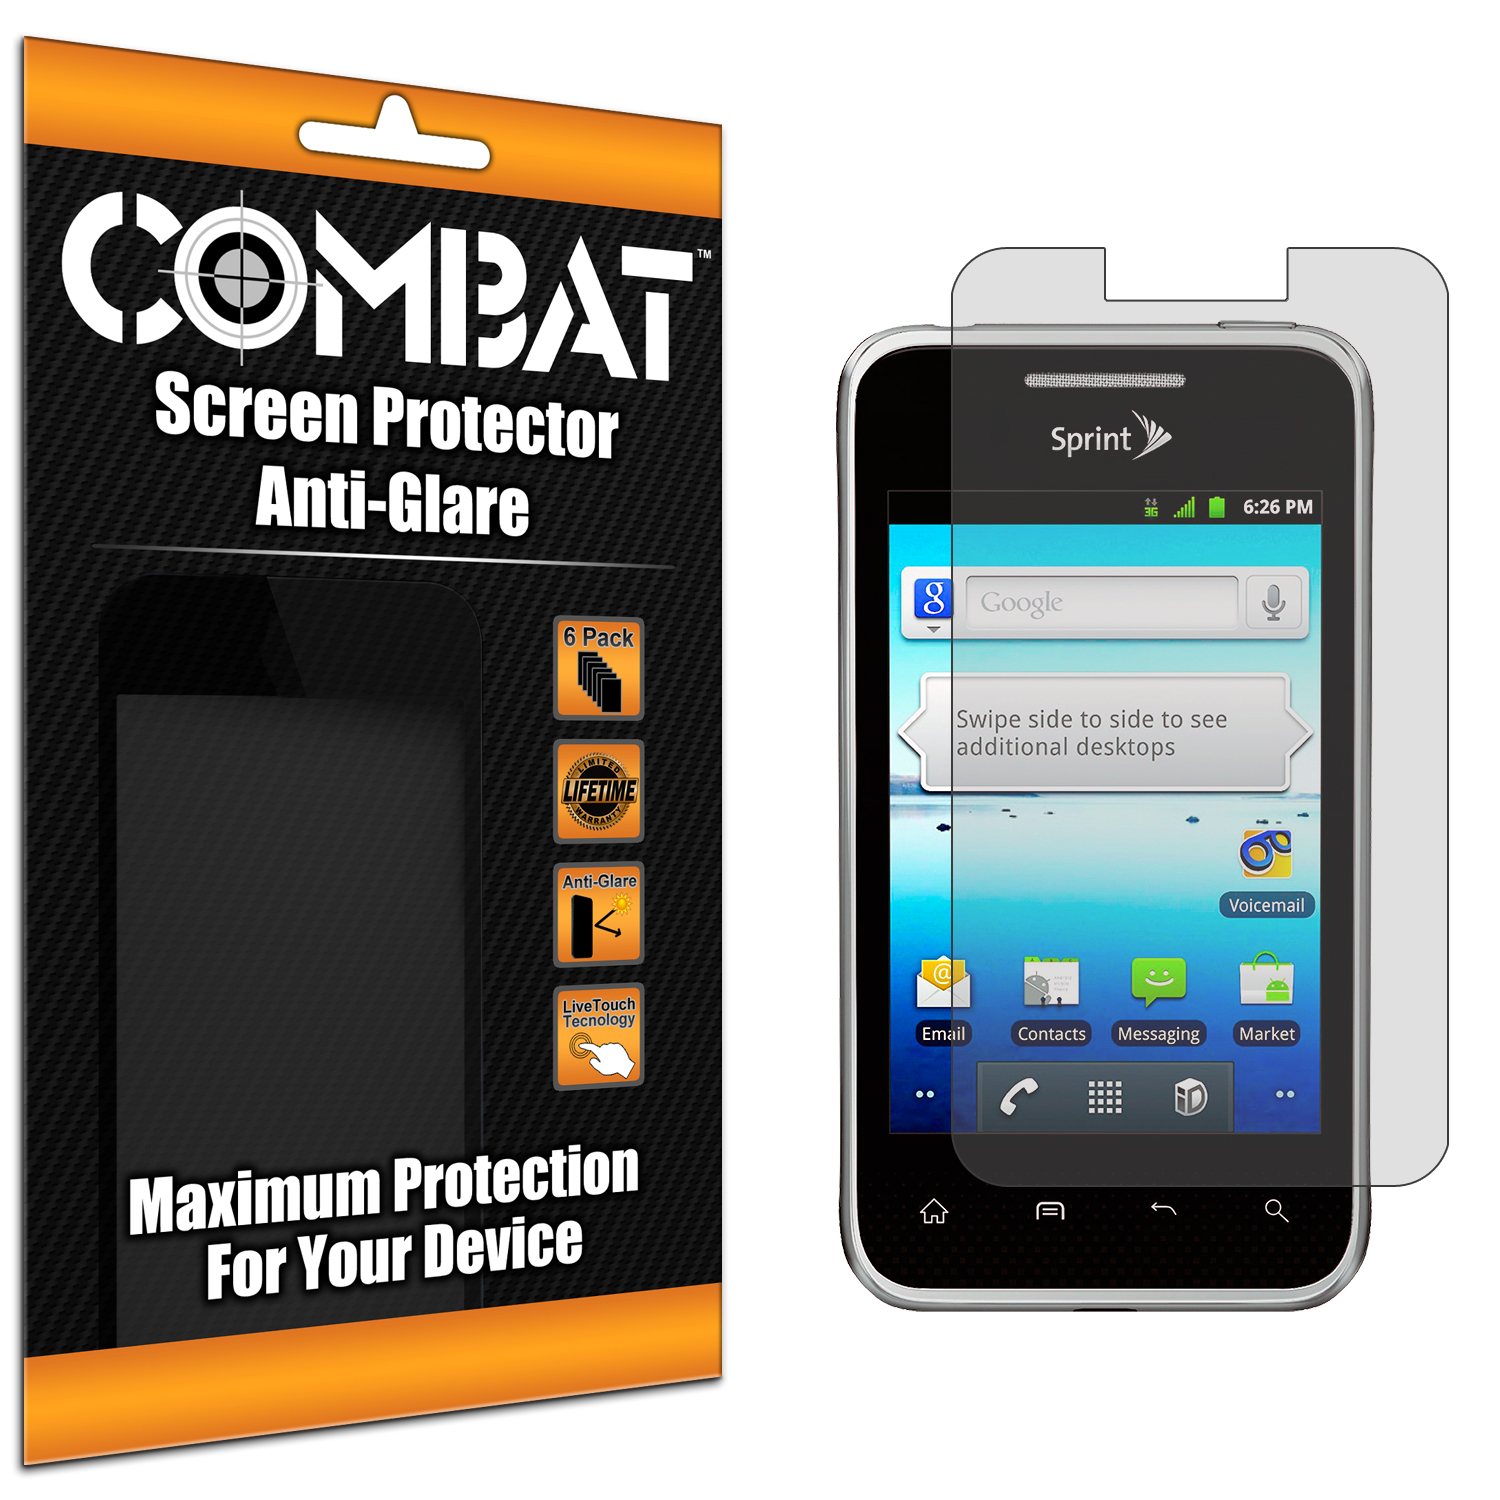 LG Optimus Elite LS696 Combat 6 Pack Anti-Glare Matte Screen Protector